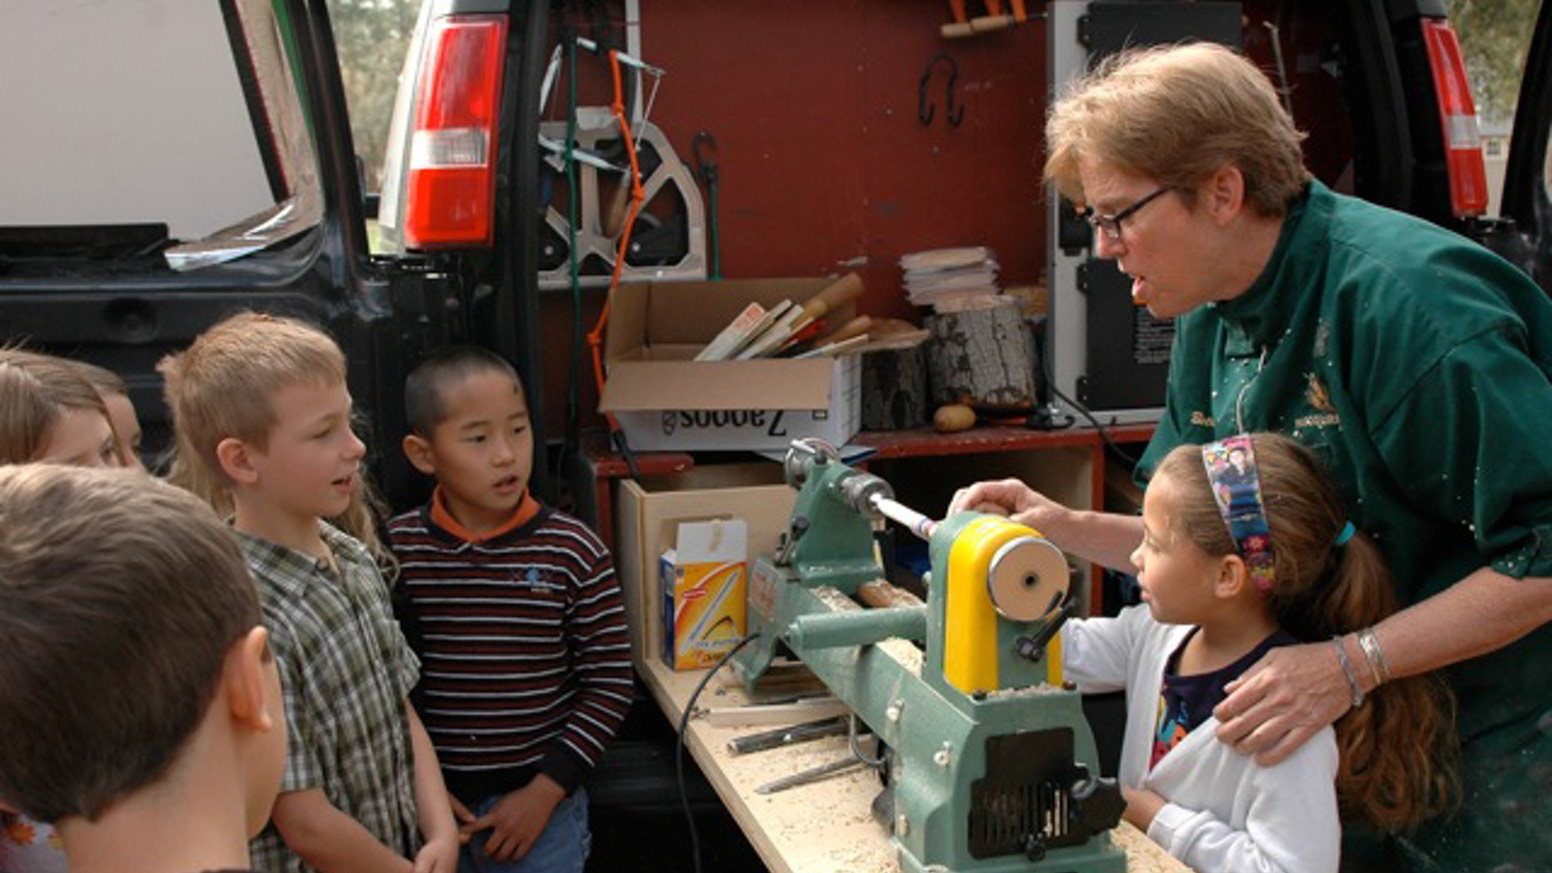 turning around boston: mobile woodworking classes for kids